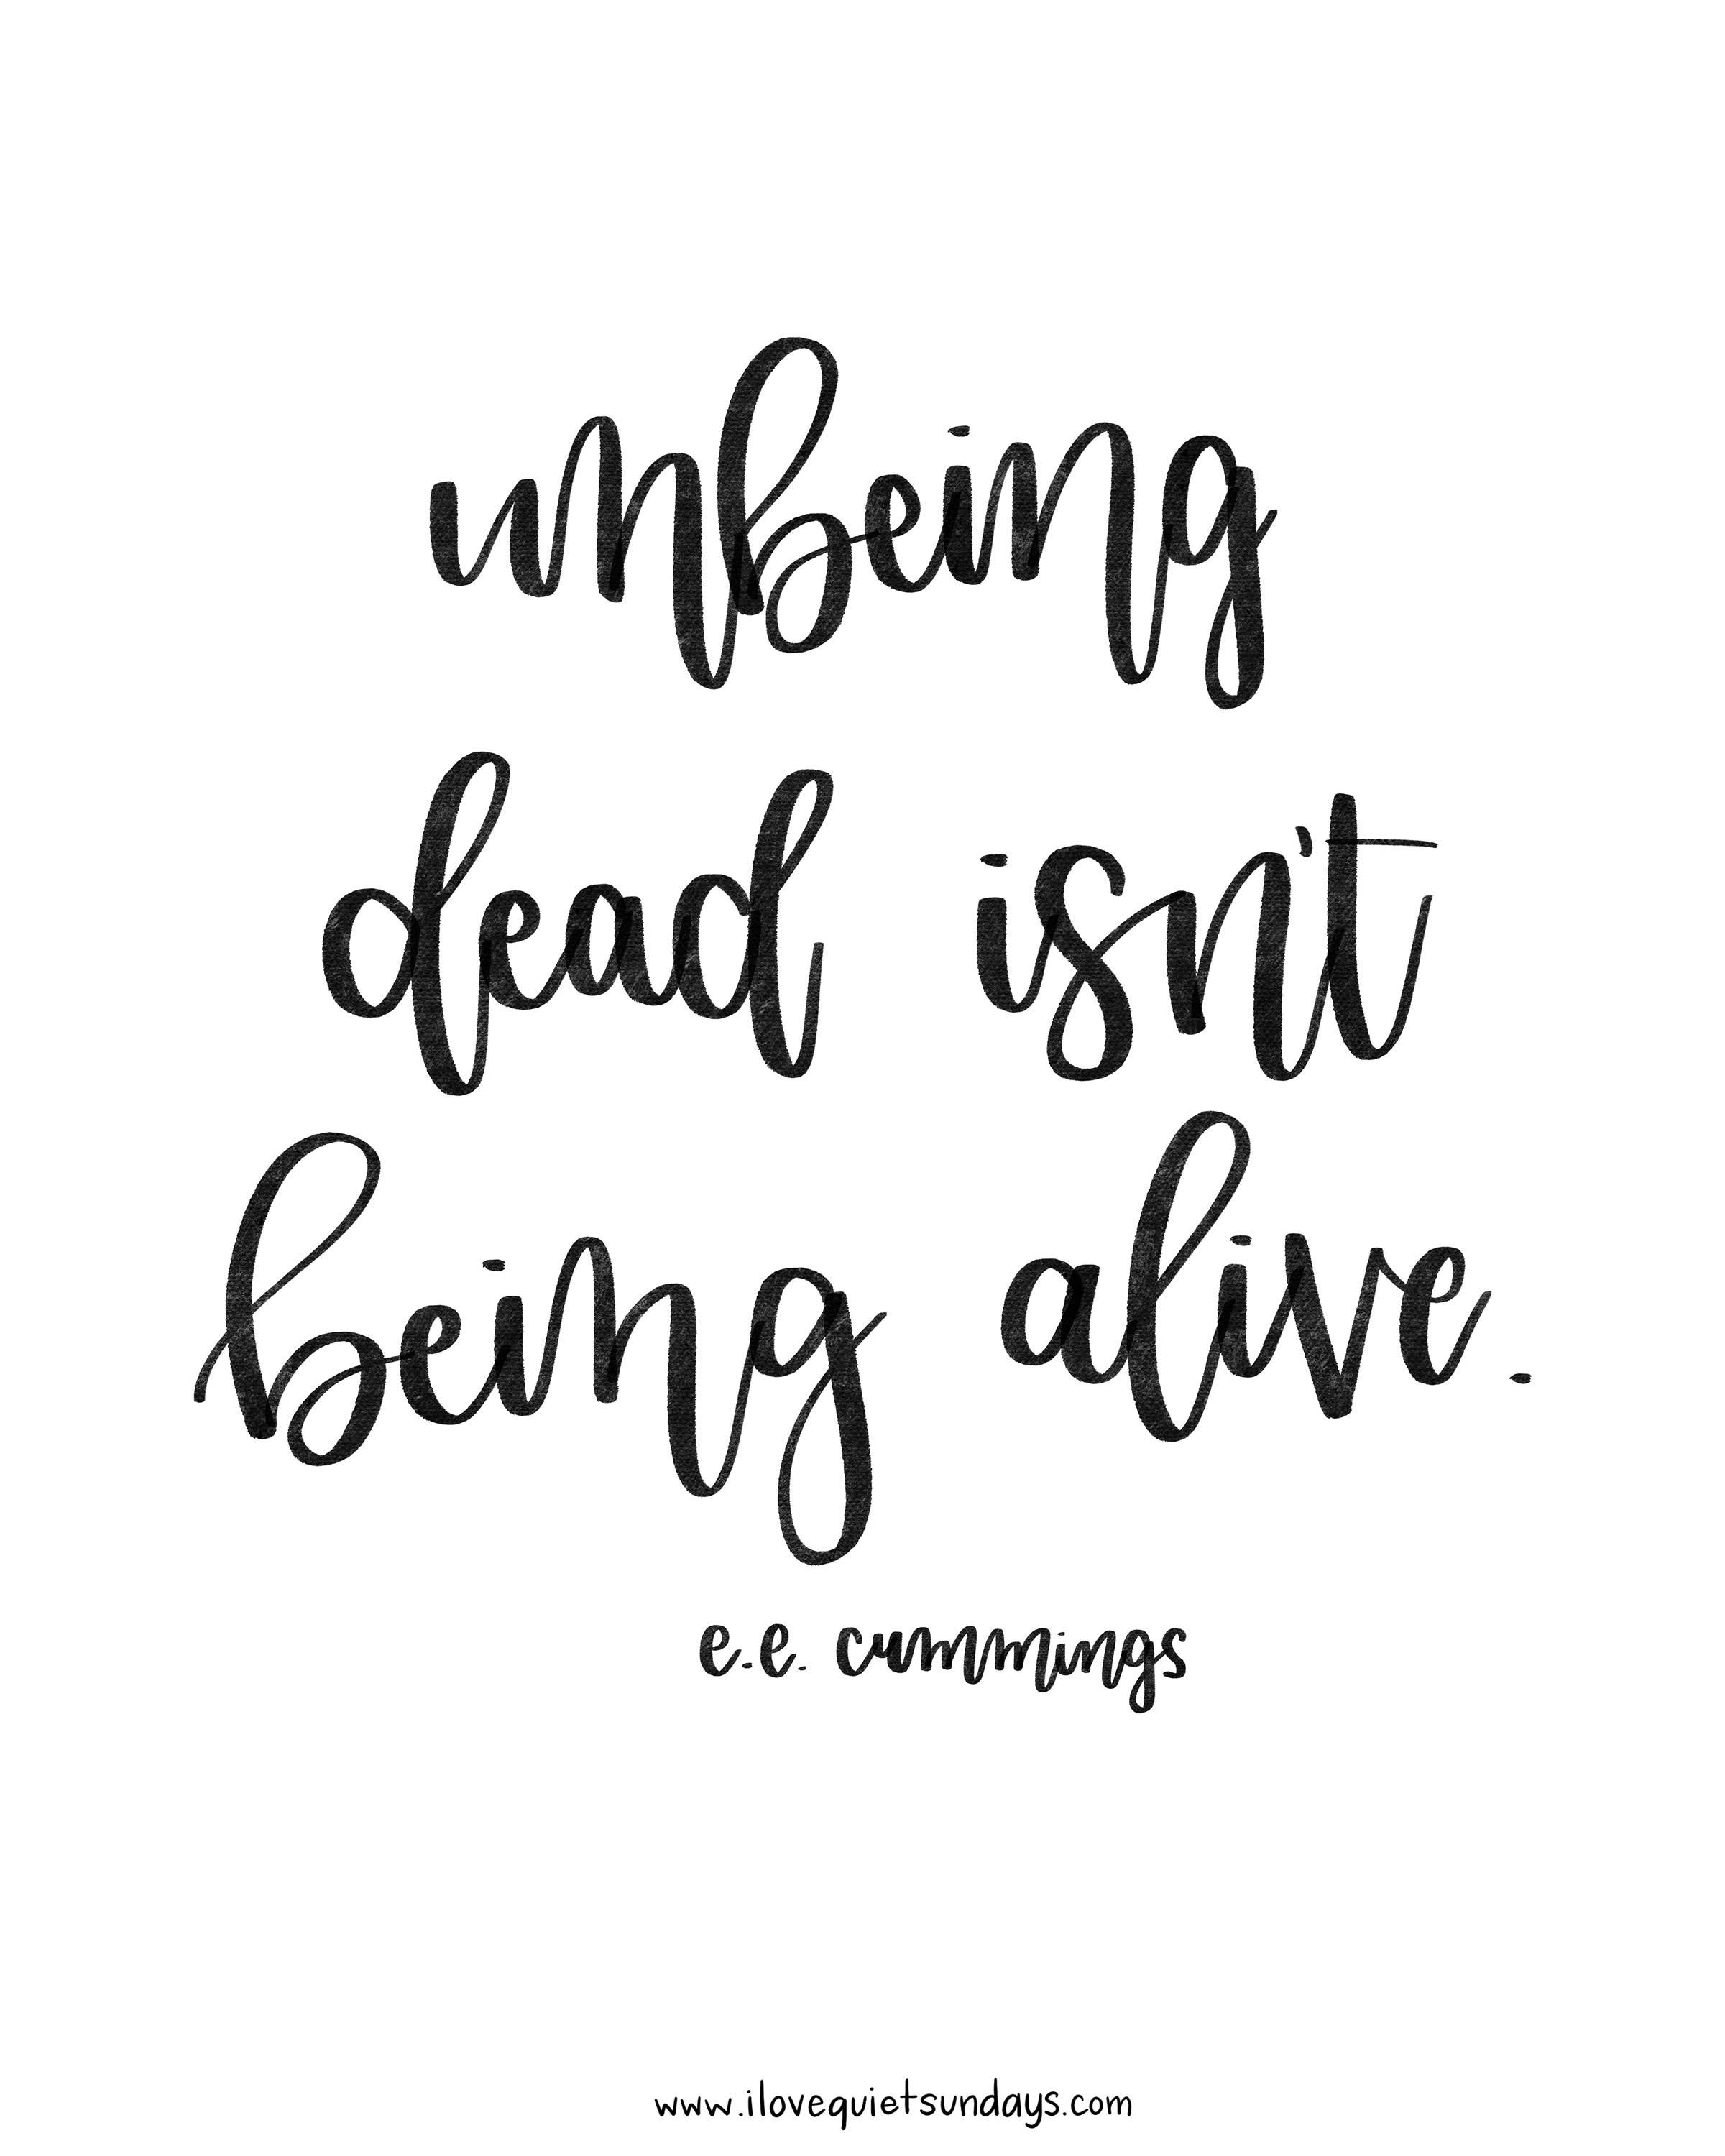 Unbeing dead isn't being alive